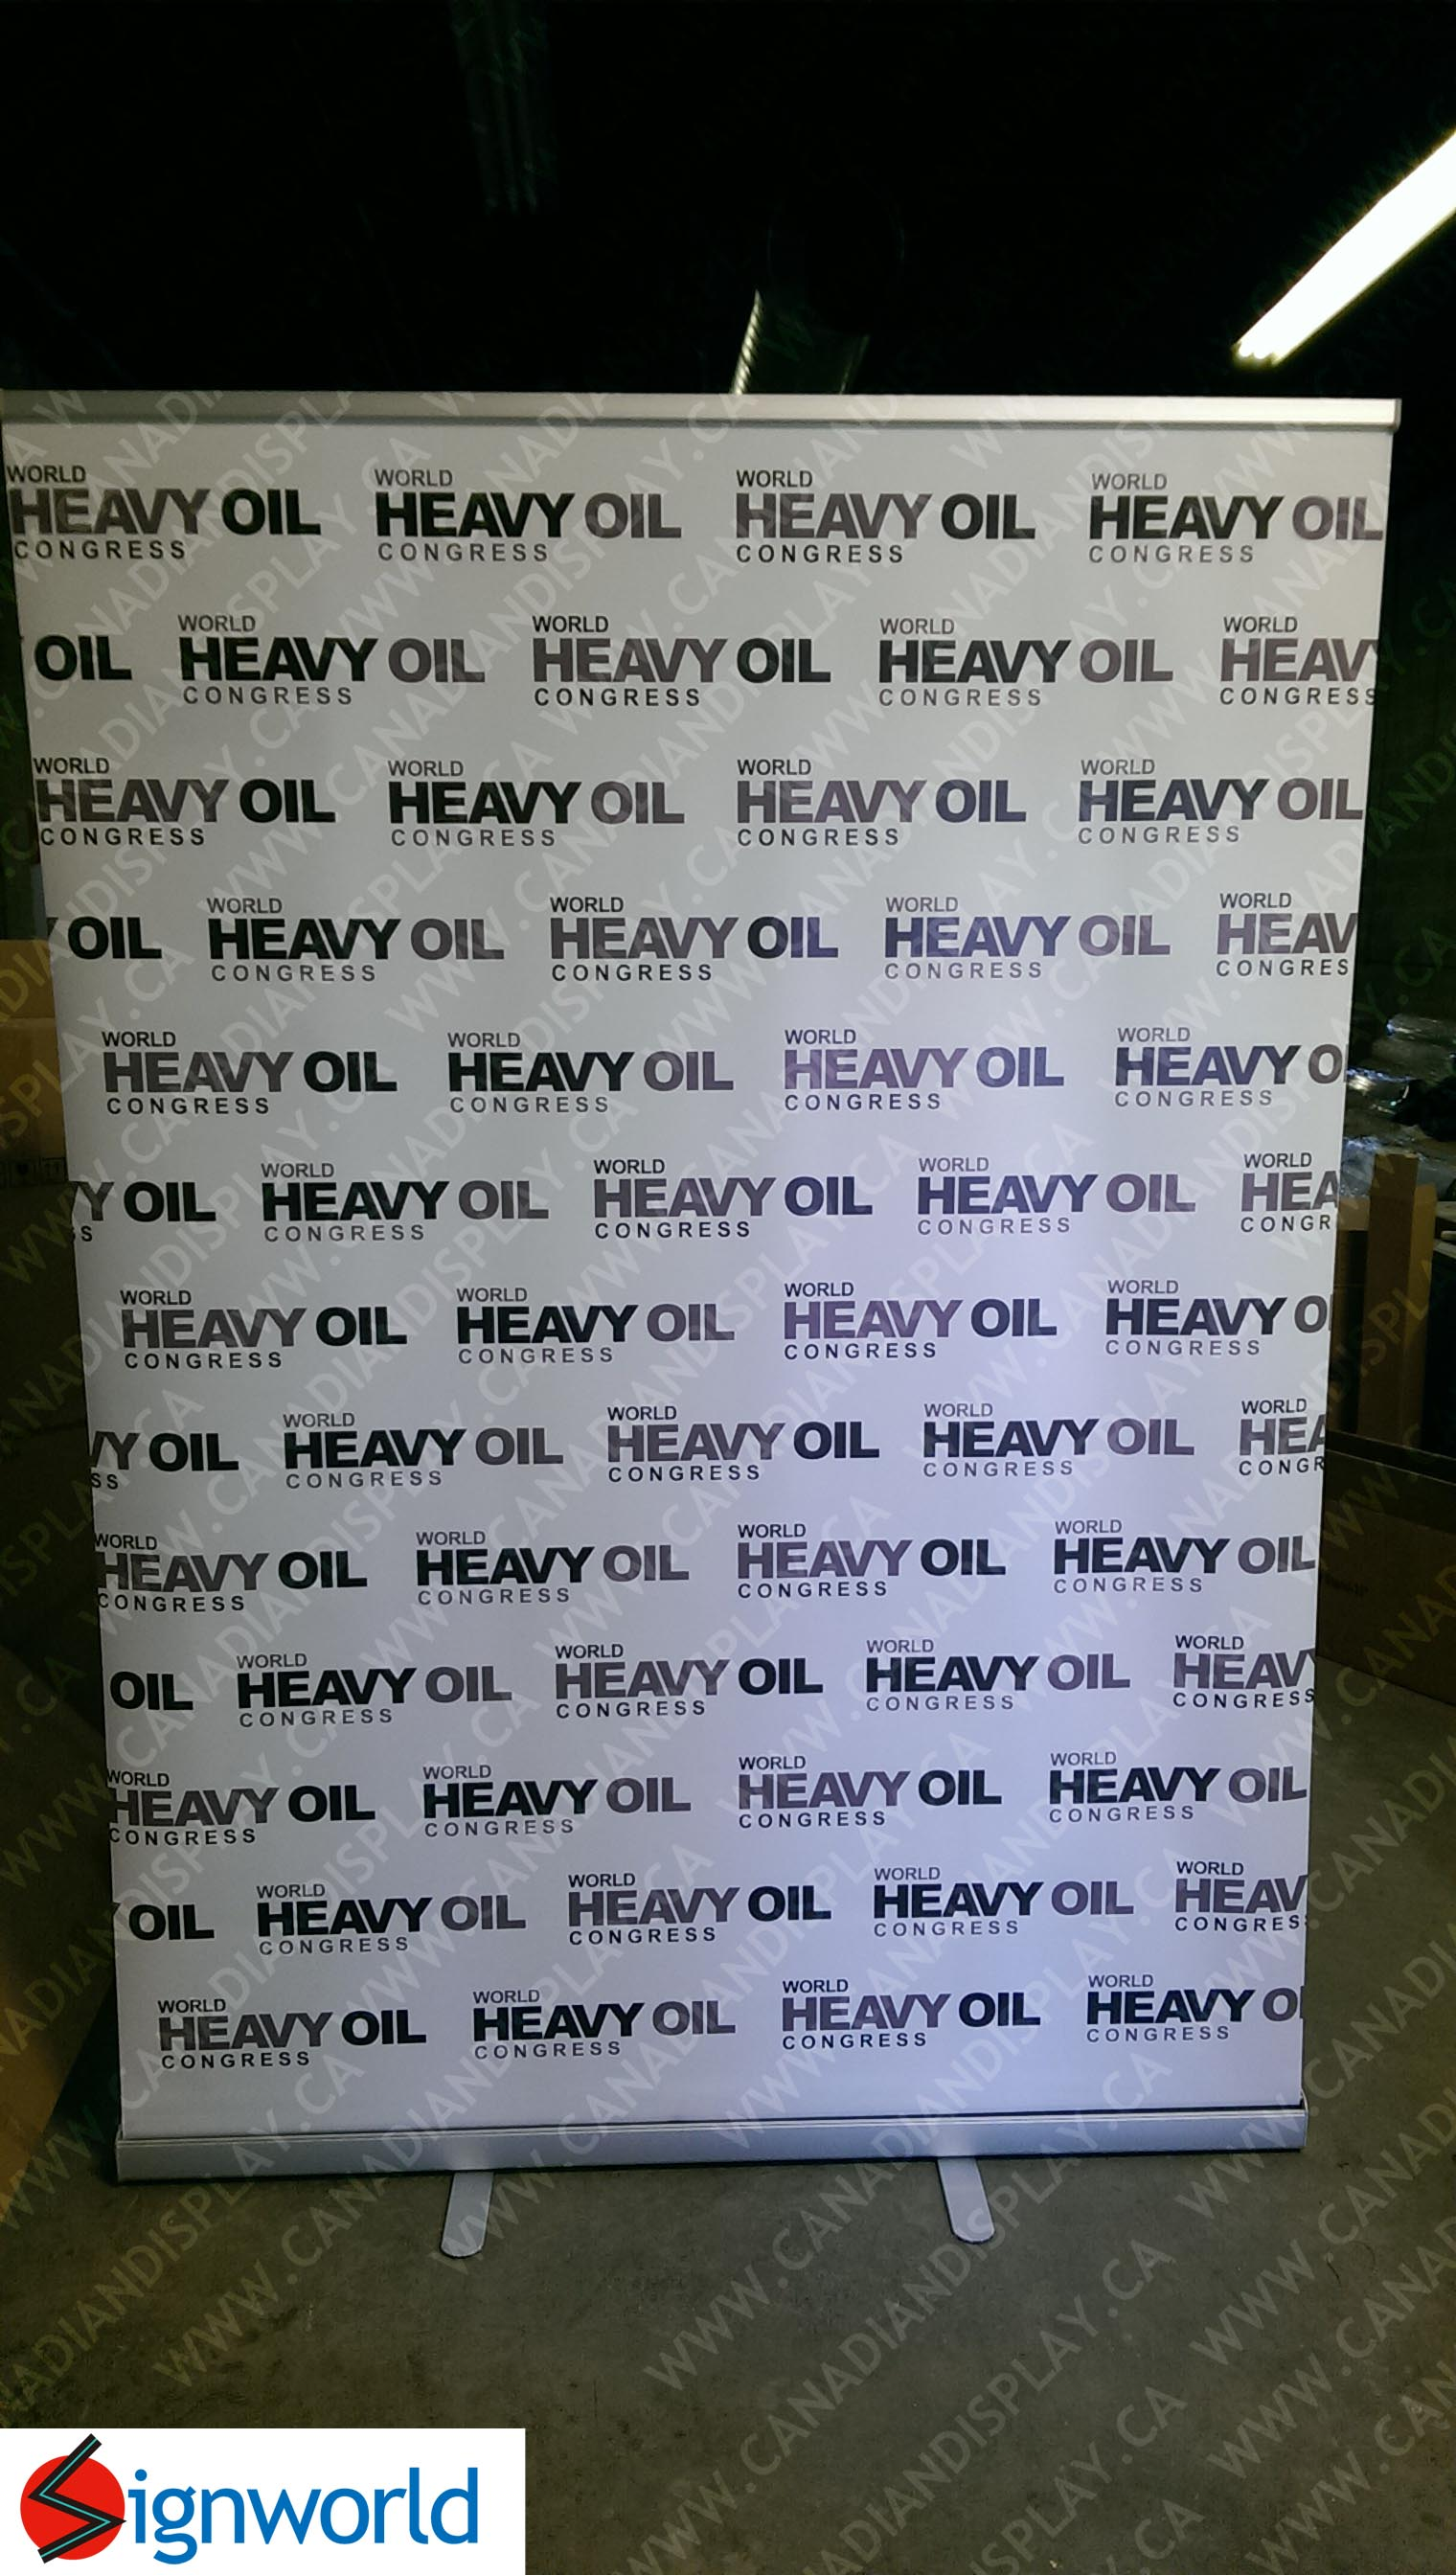 World Heavy Oil Congress 1